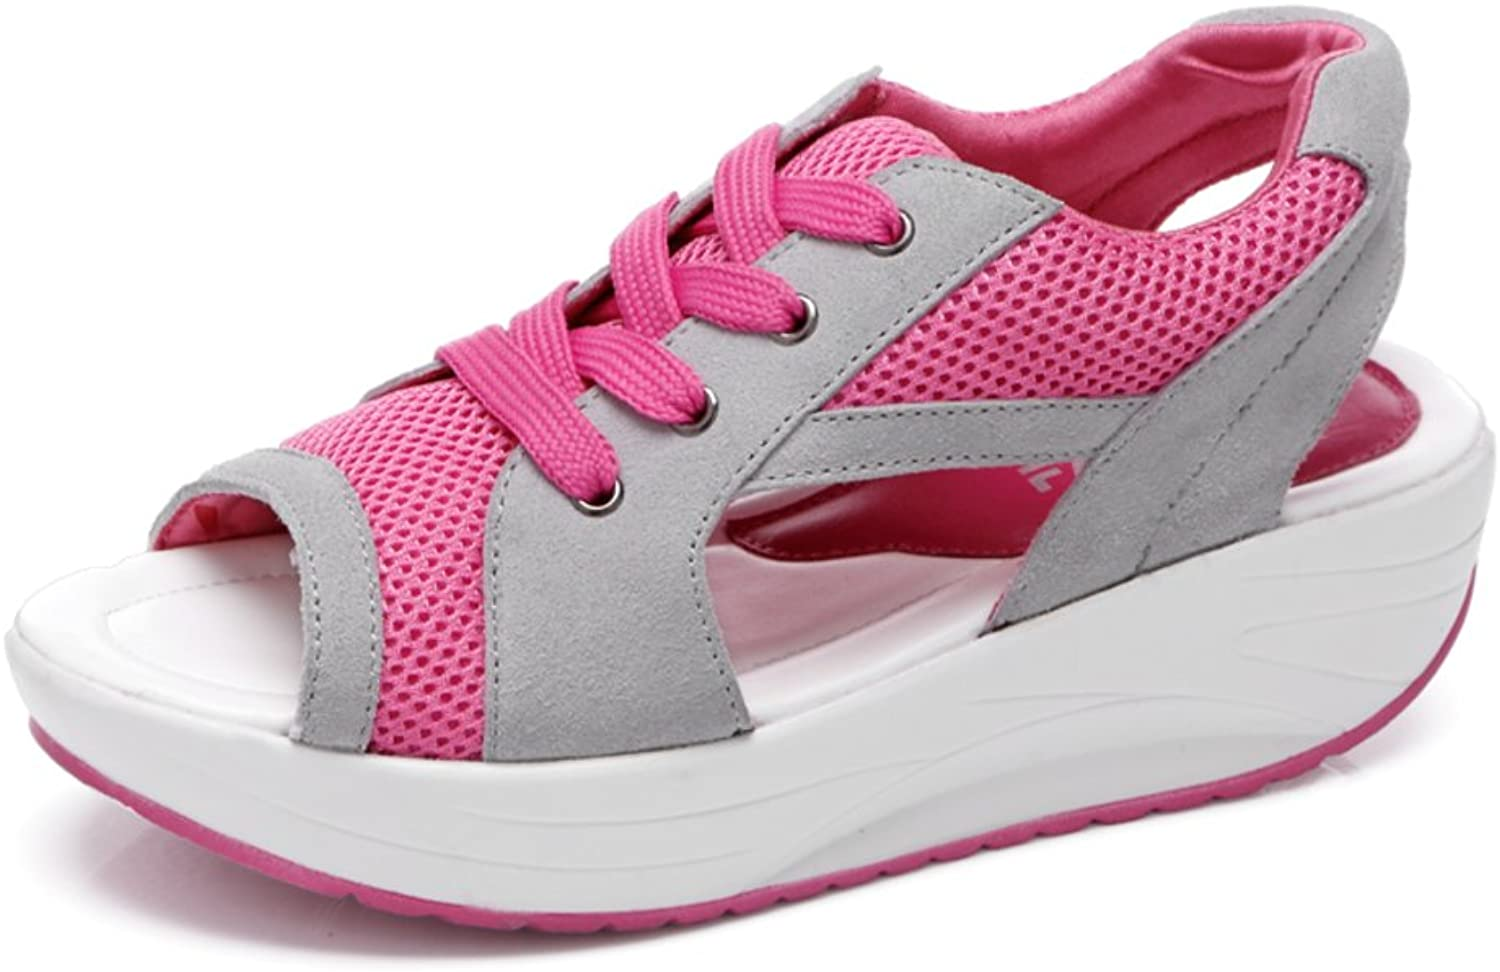 MET RXL Ladies Fashion Sandals Breathable mesh shoes high Casual shoes